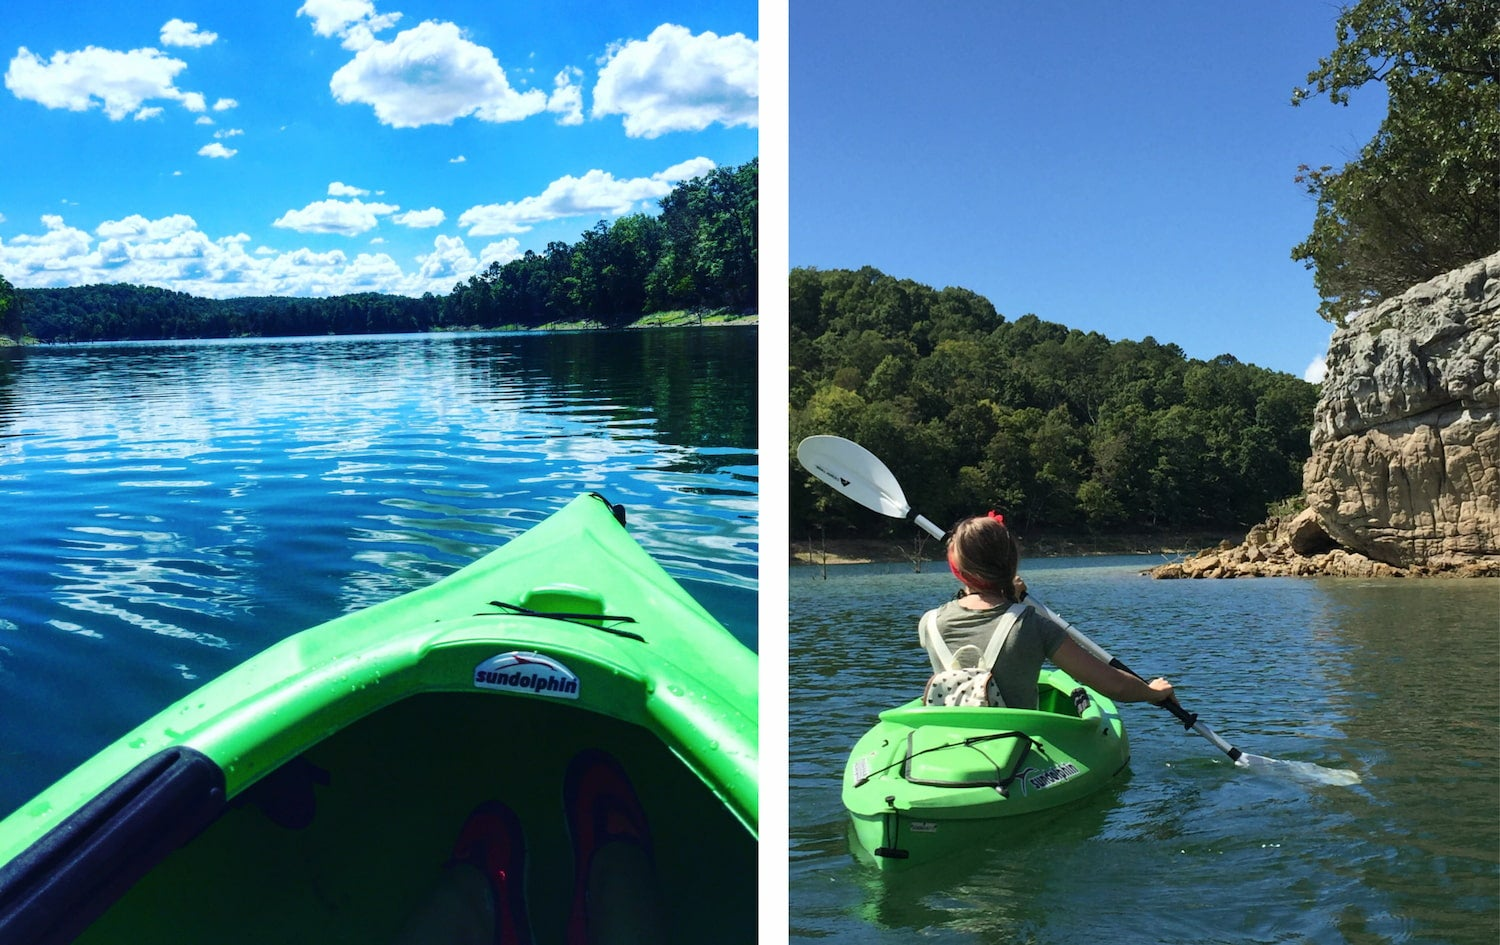 side by side images of kayaks on the water